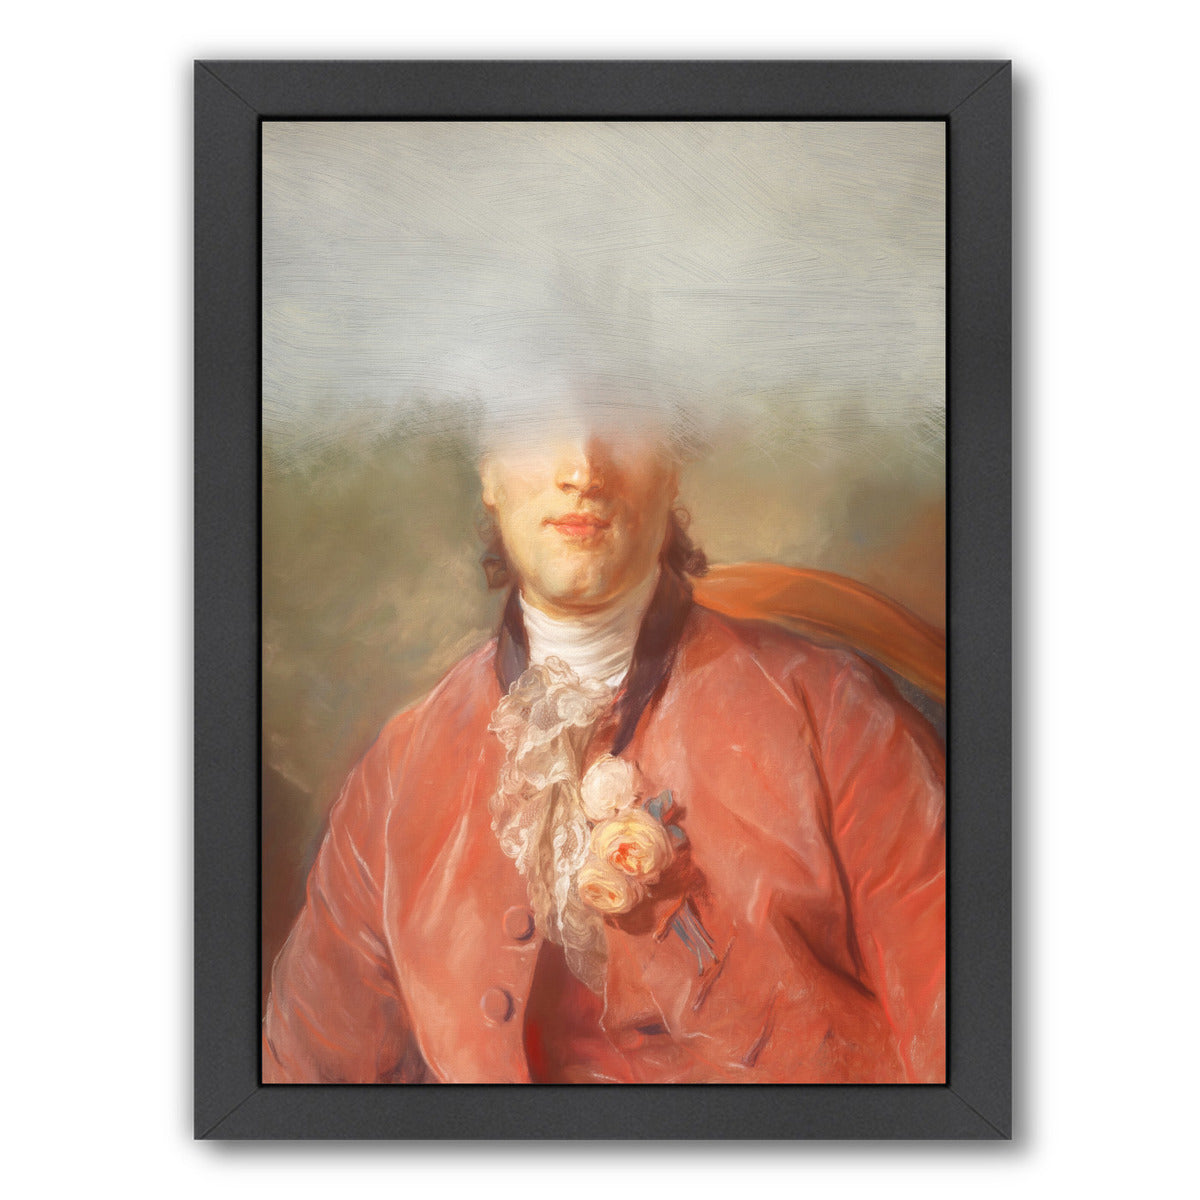 The Frenchman By Chaos & Wonder Design - Black Framed Print - Wall Art - Americanflat